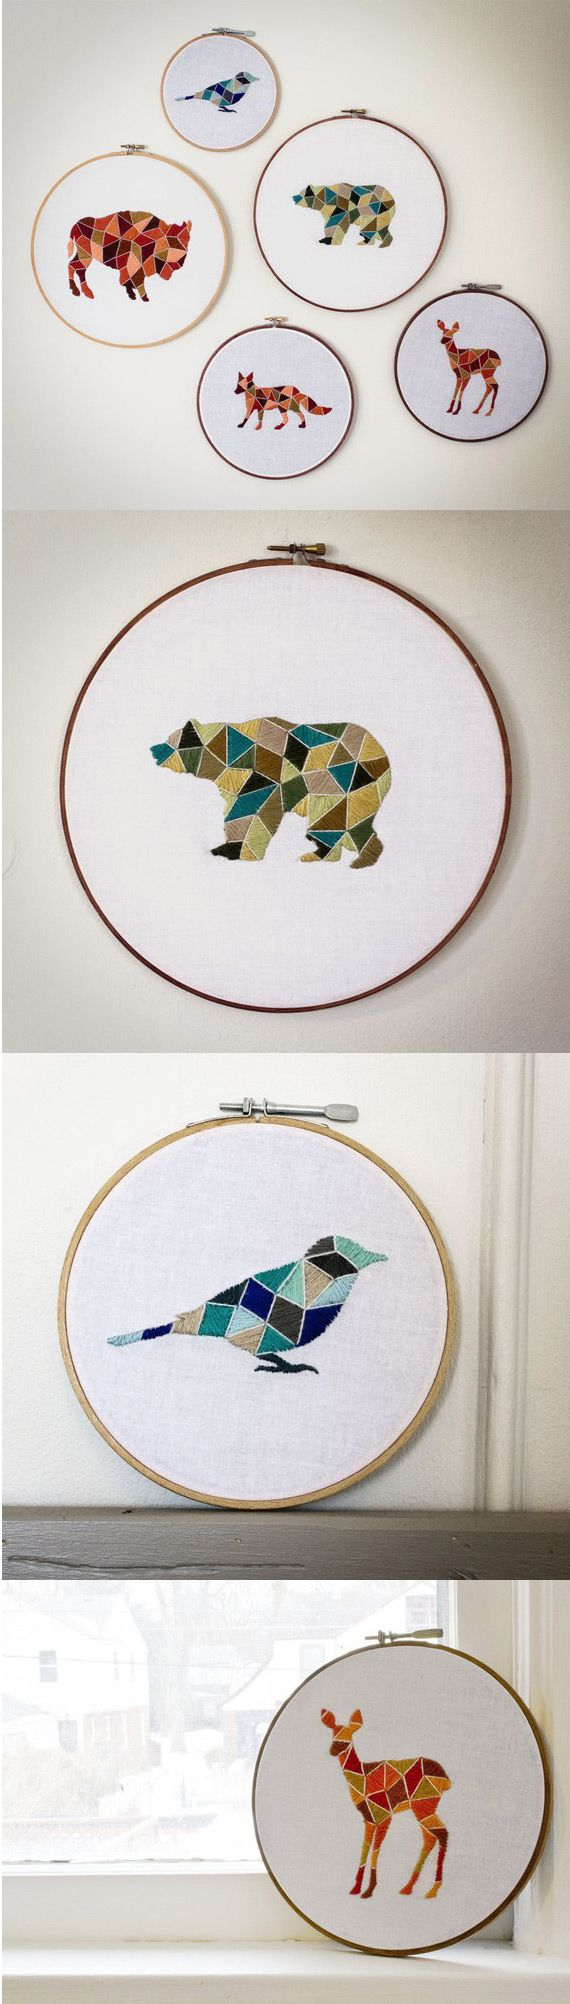 Cute animals, geometric shapes, stitching.